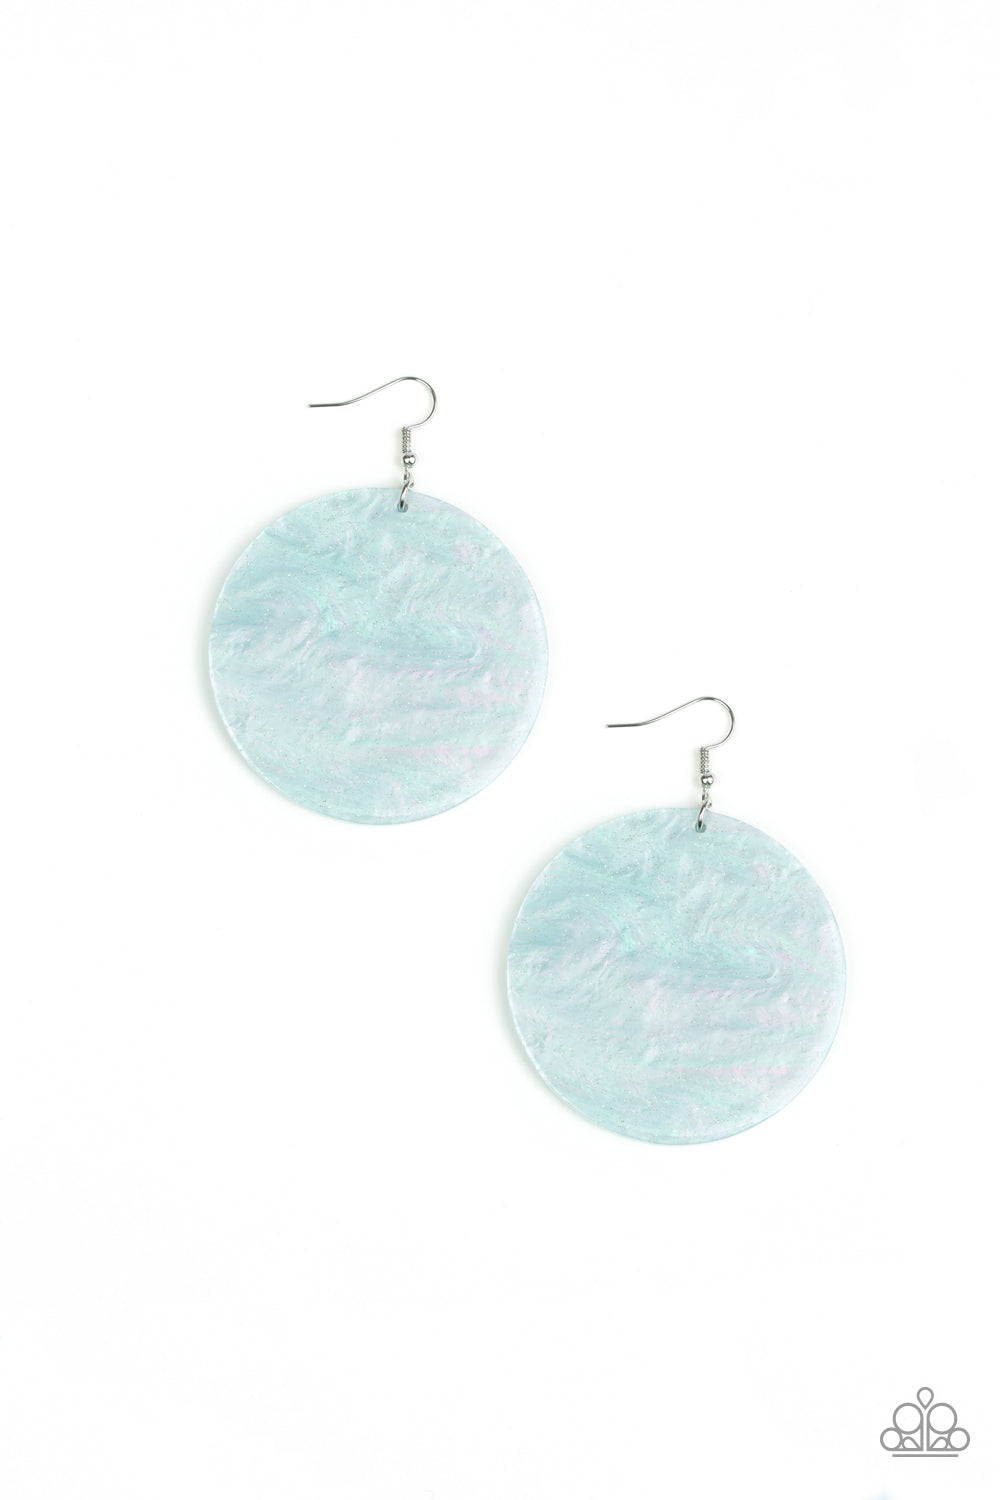 Paparazzi Accessories - SEA Where It Goes - Green Earrings - JMJ Jewelry Collection